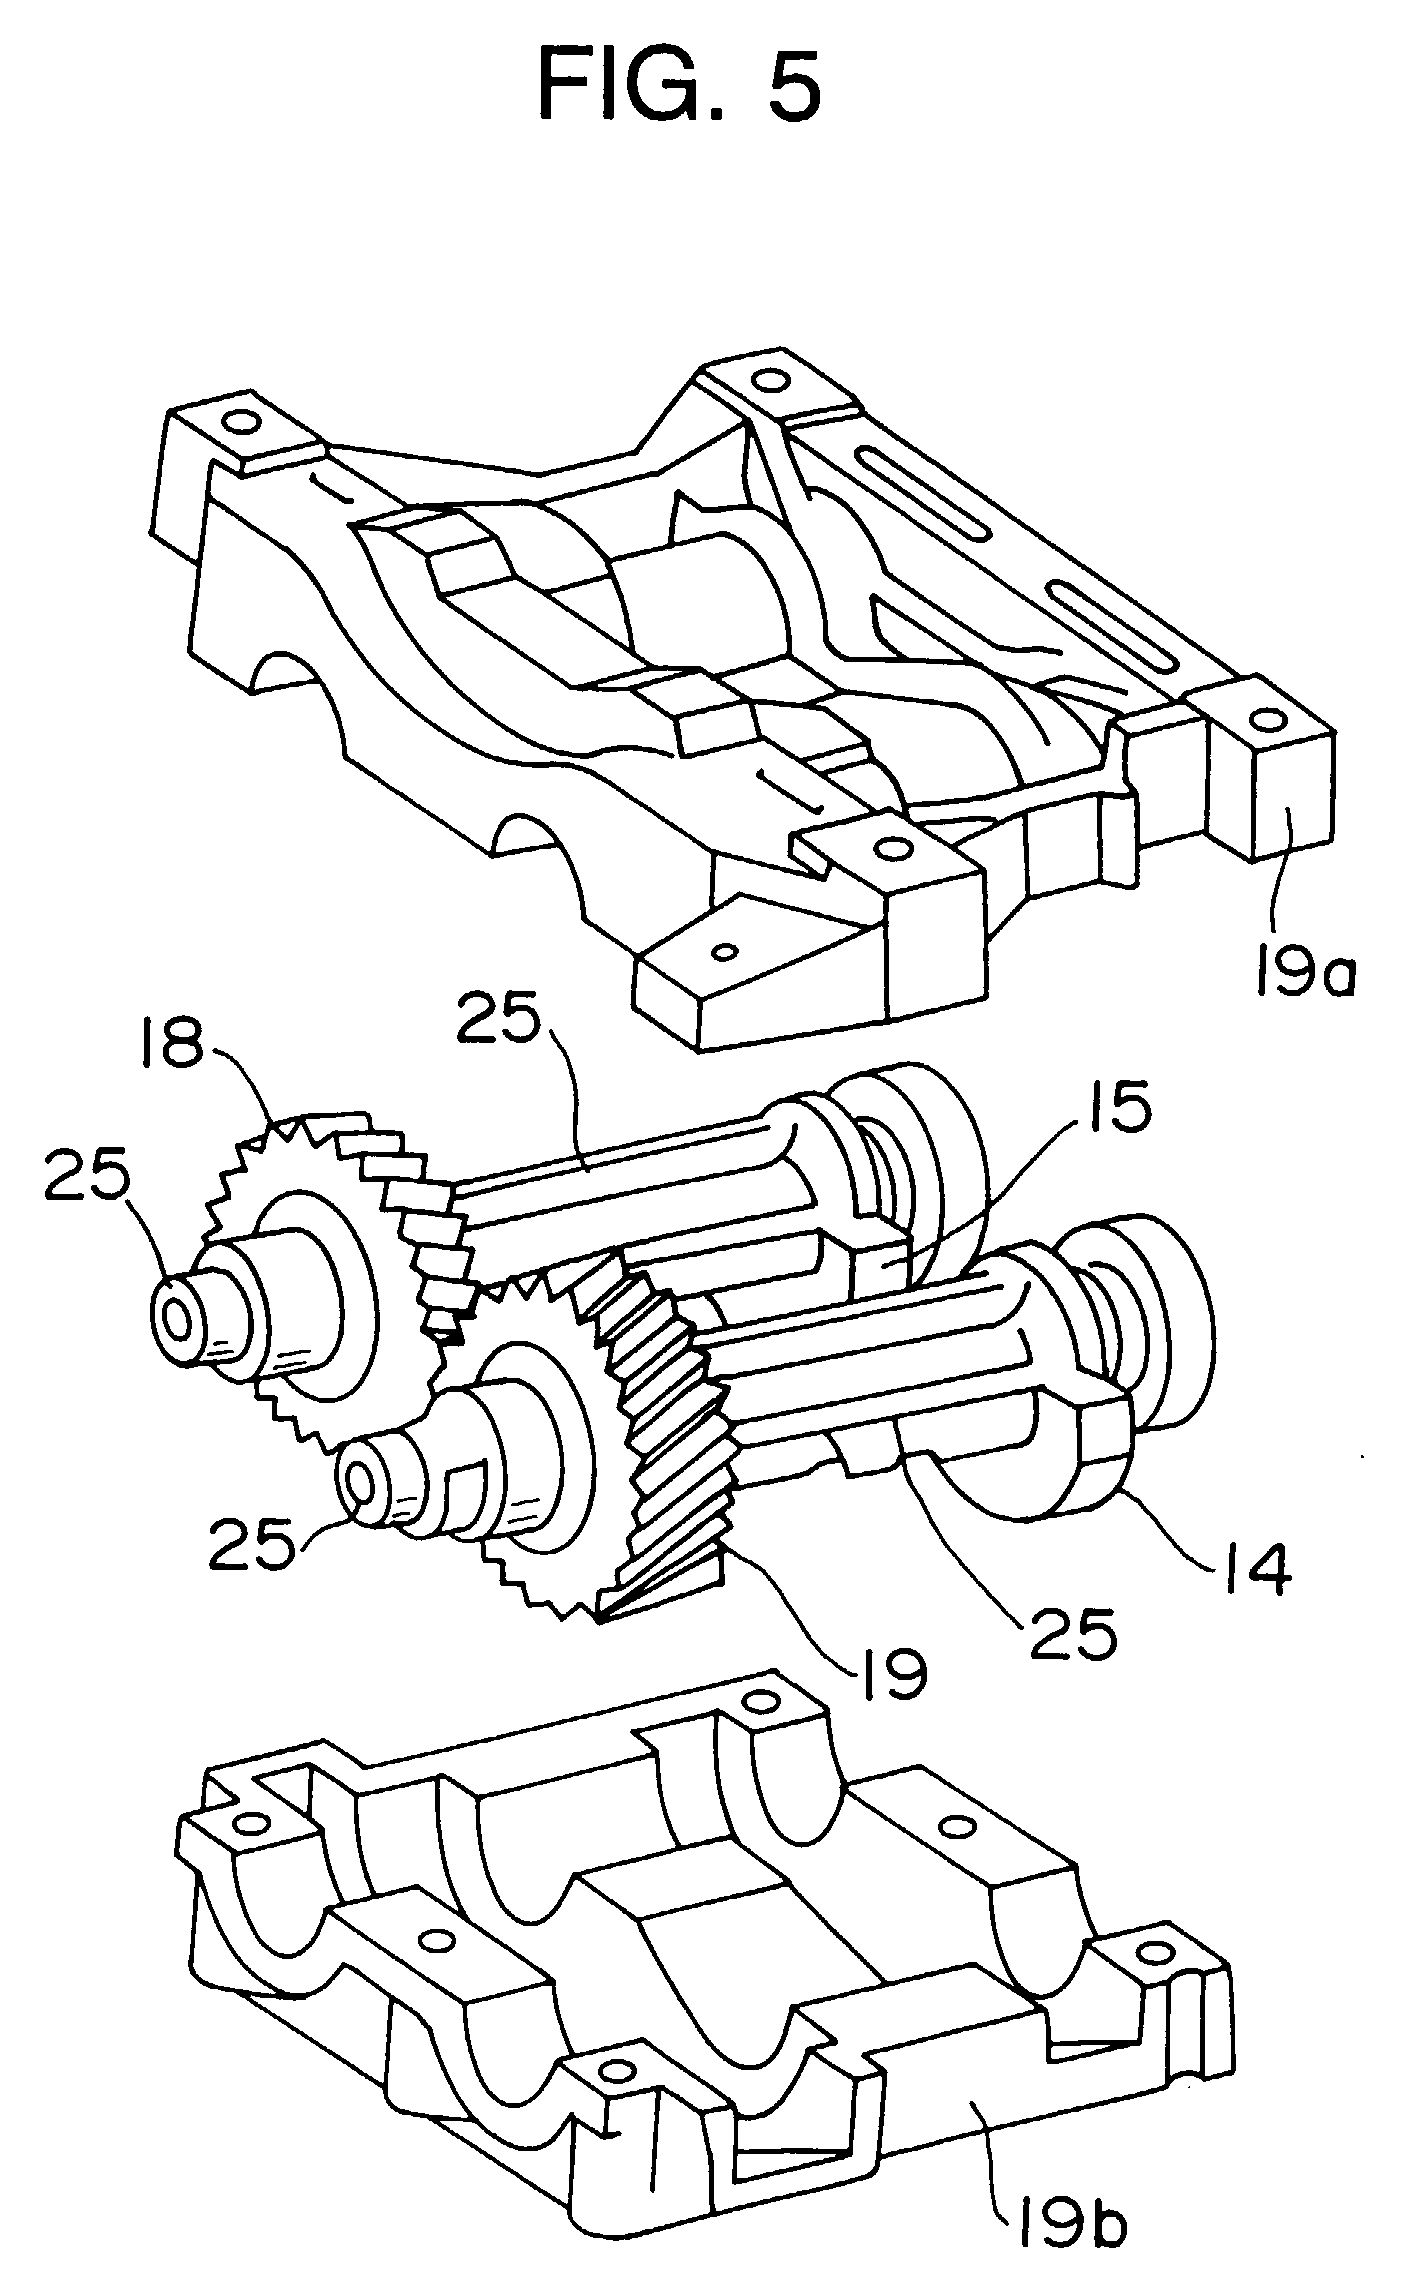 Toyota Camry Engine Diagram 1991 5sfe On 99